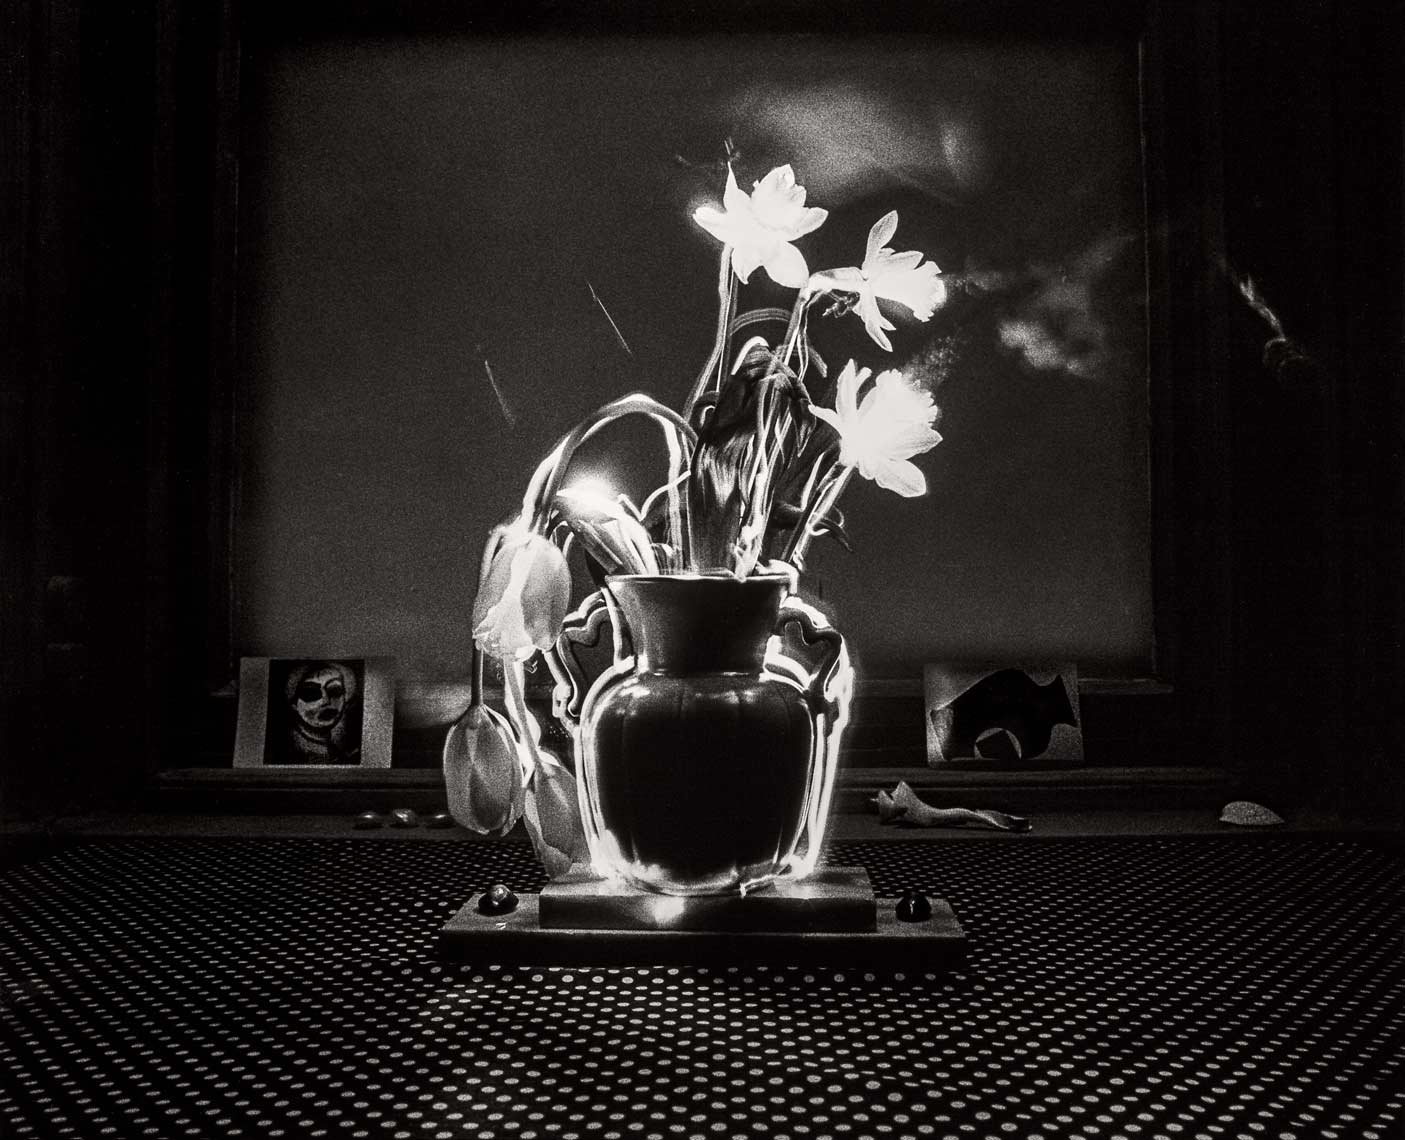 David Lebe; Smoking Daffodils, 1982, light drawing, black and white photograph